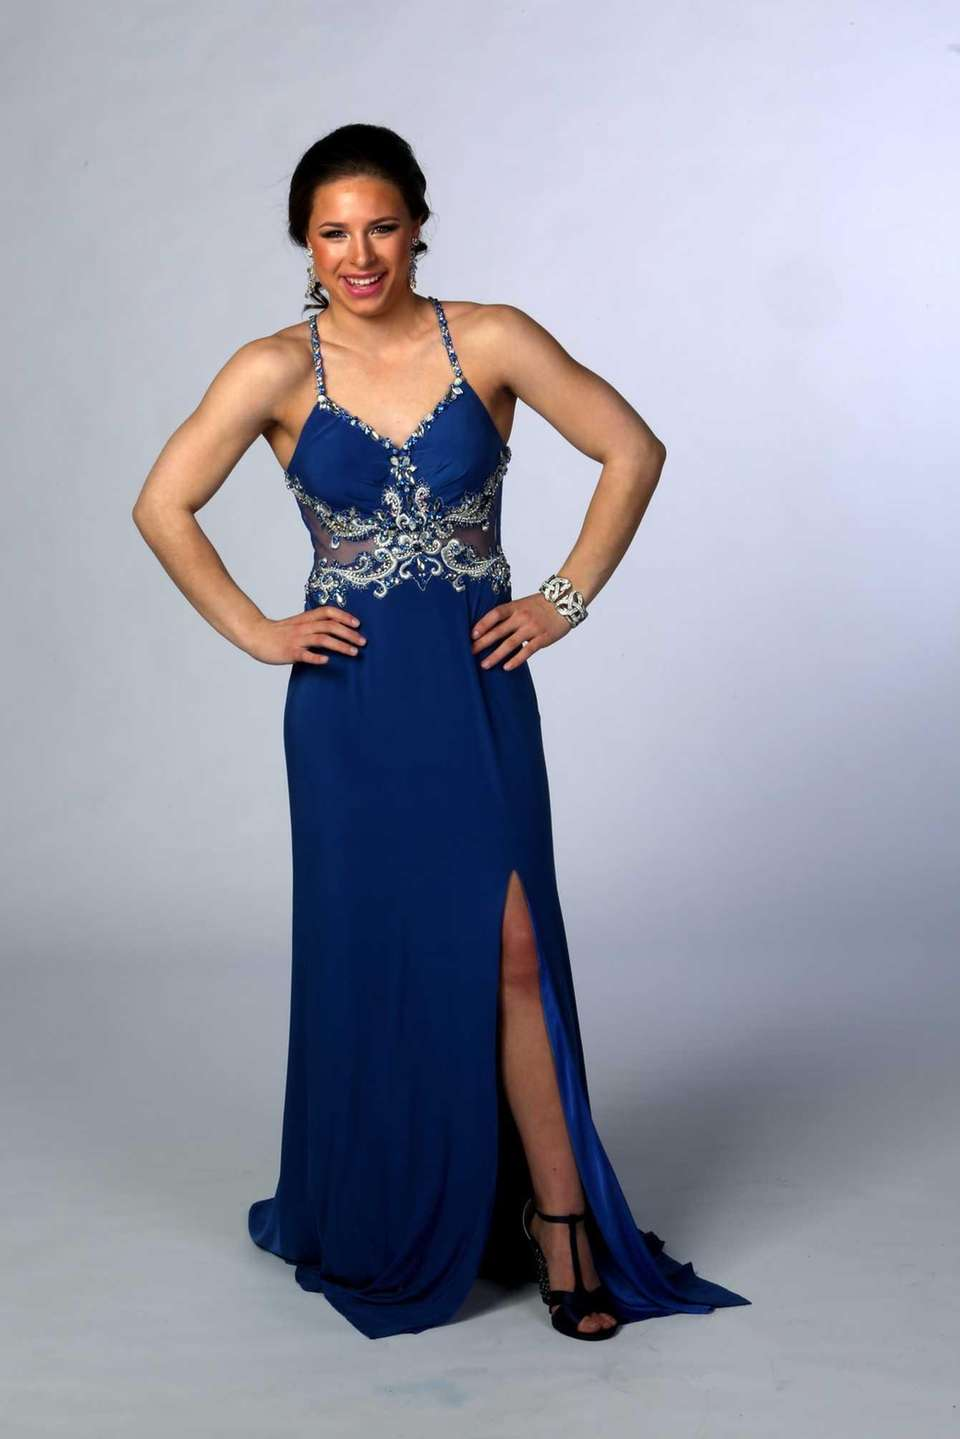 1. The round offA sapphire blue gown with